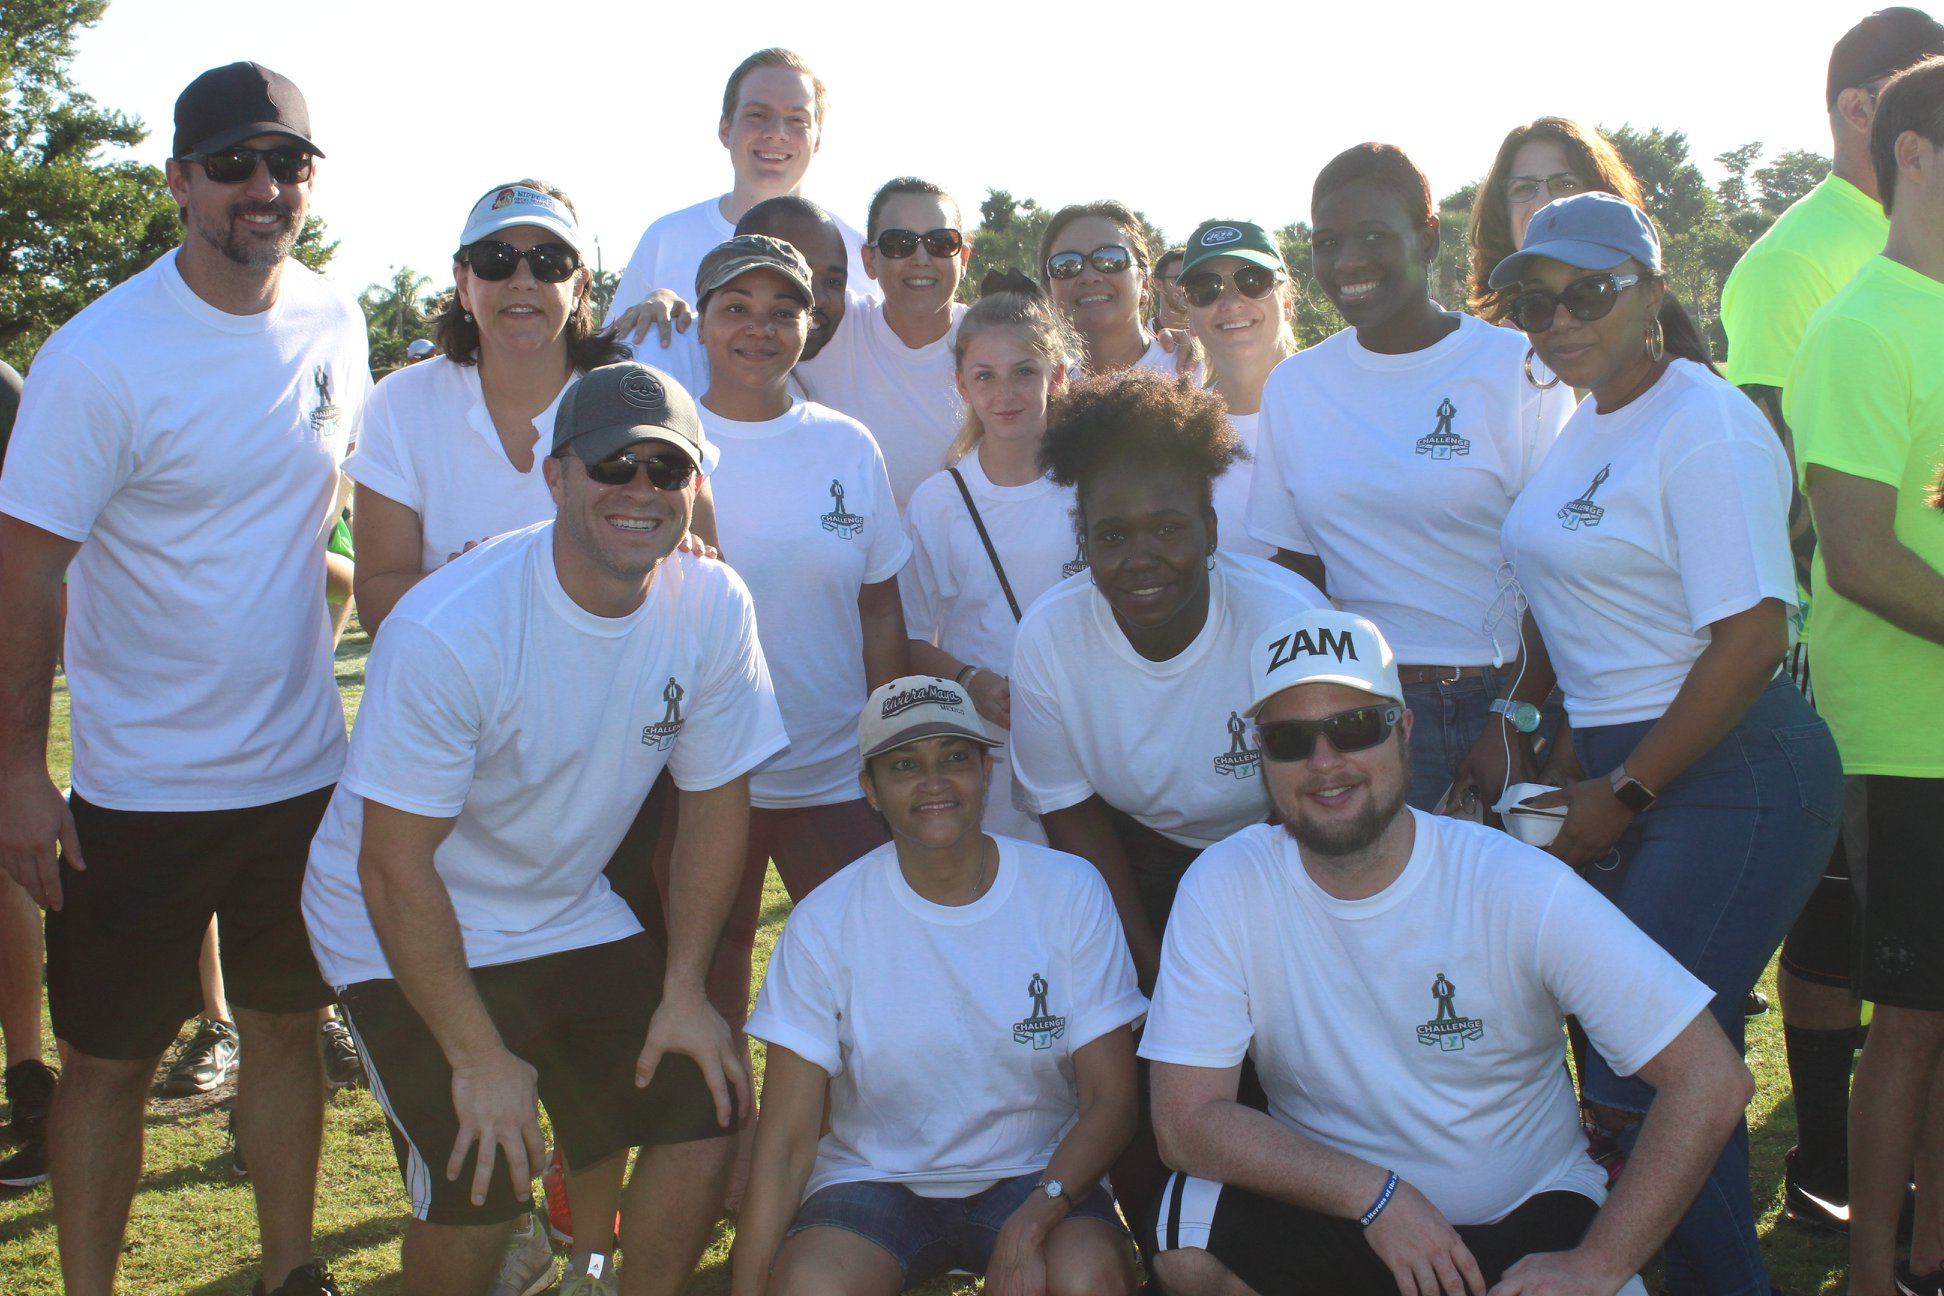 YMCA OF SOUTH PALM BEACH COUNTY'S CORPORATE CHALLENGE